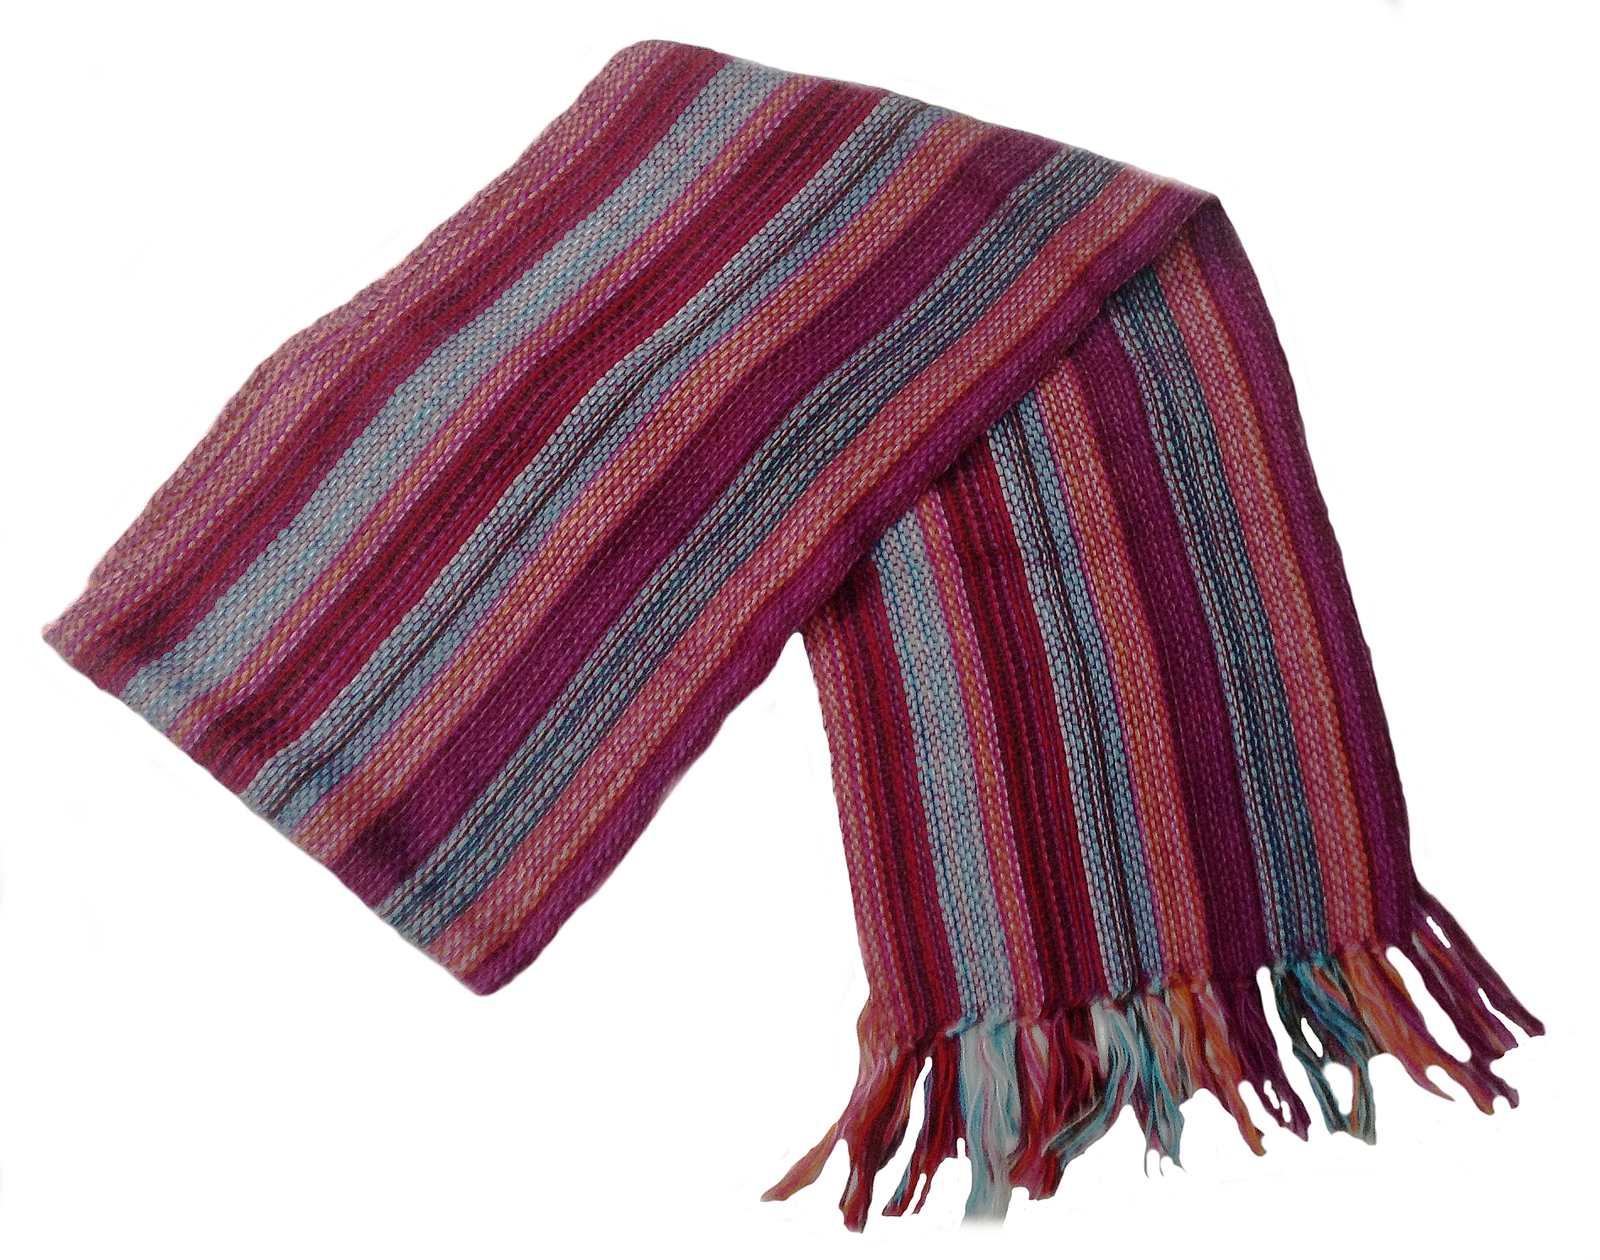 "Primary image for Alpakaandmore Unisex 100% Red Alpaca Wool Scarf, Shawl Stripes 63""x 4.72"""